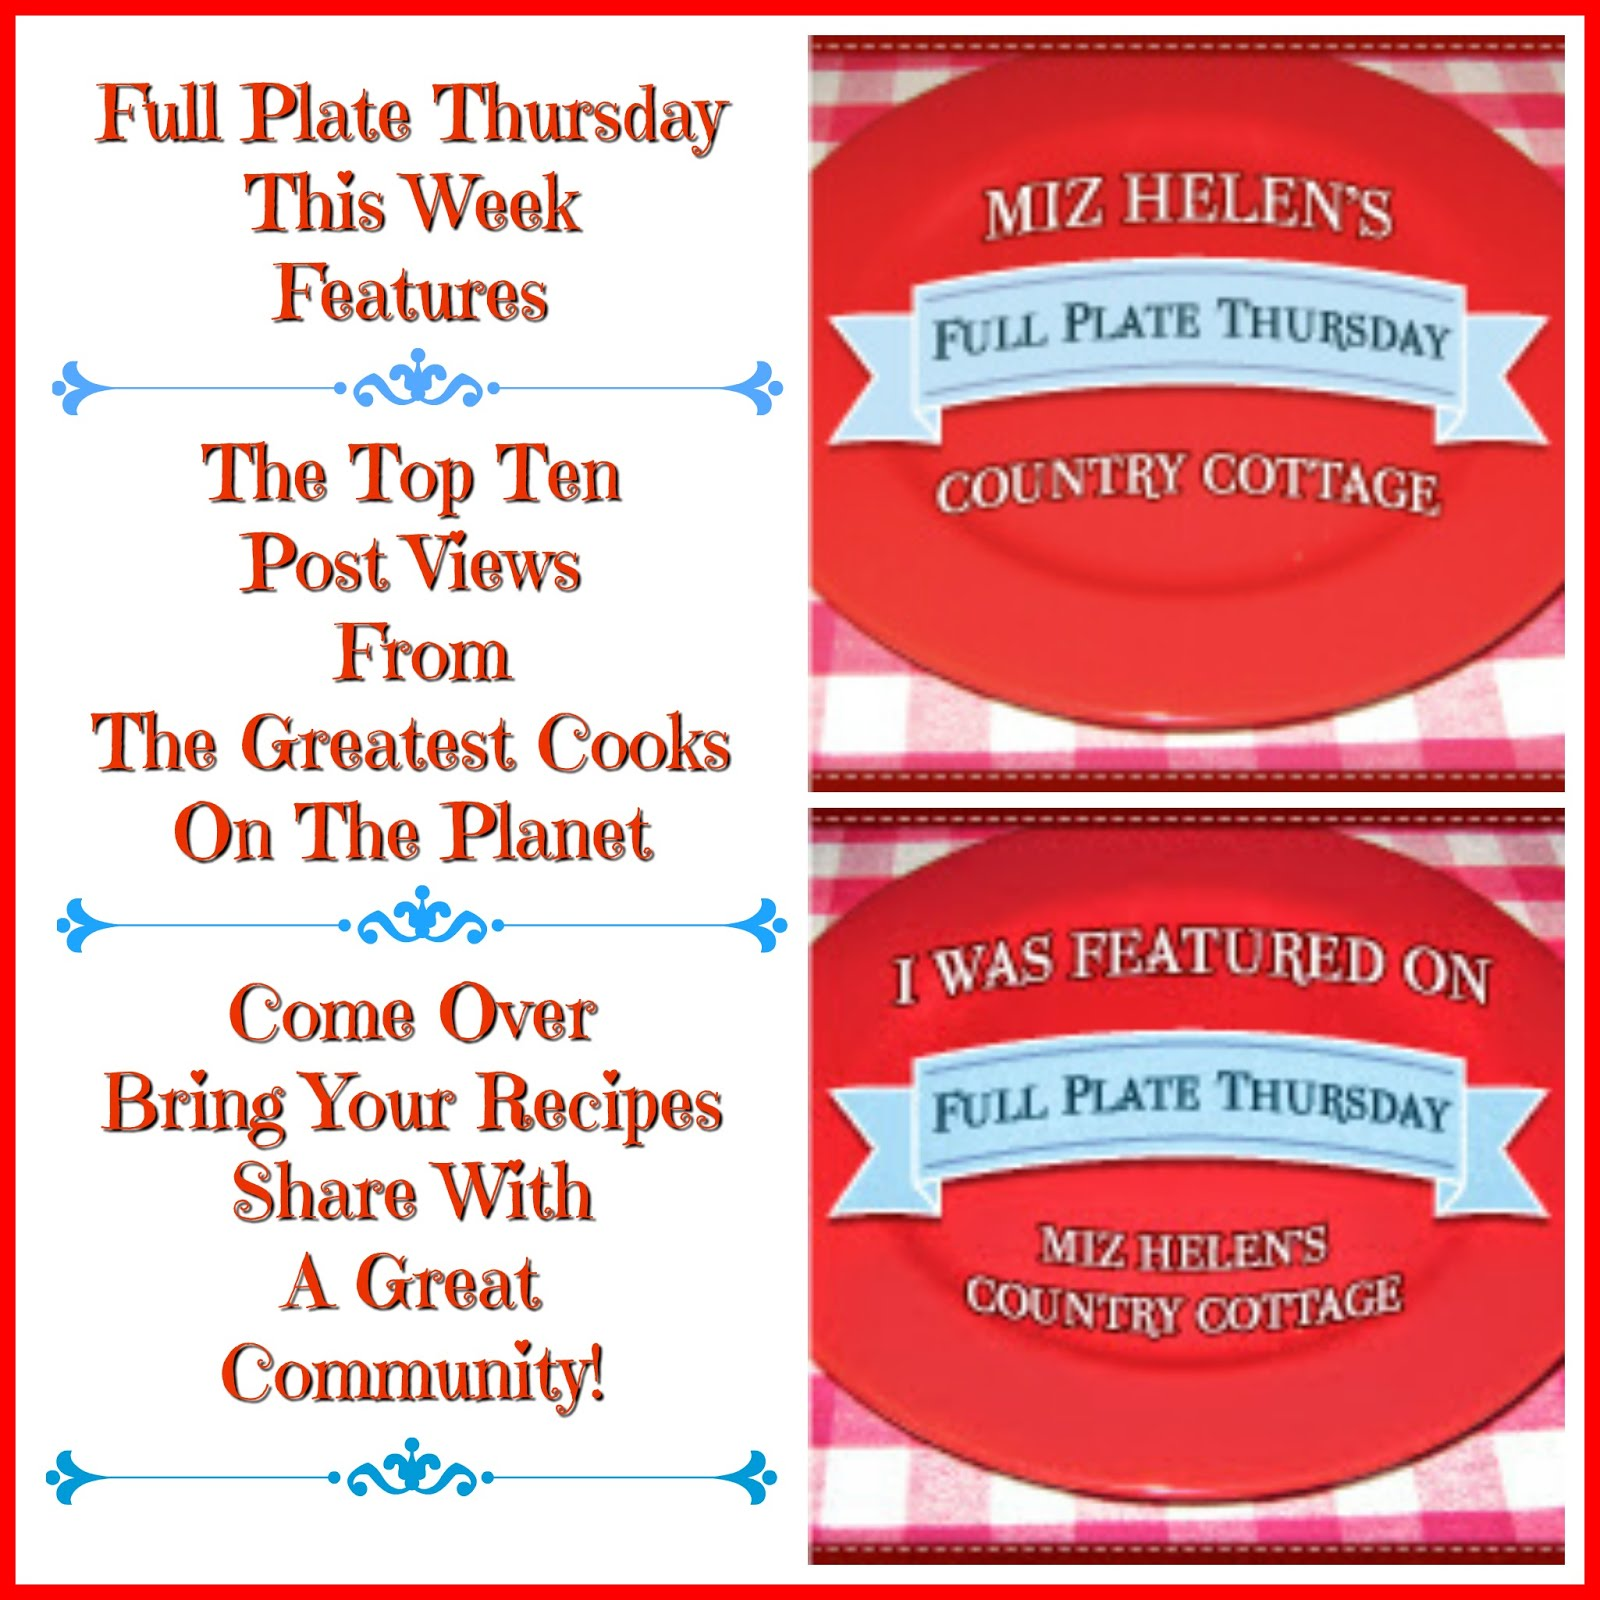 Full Plate Thursday,438 Current Party